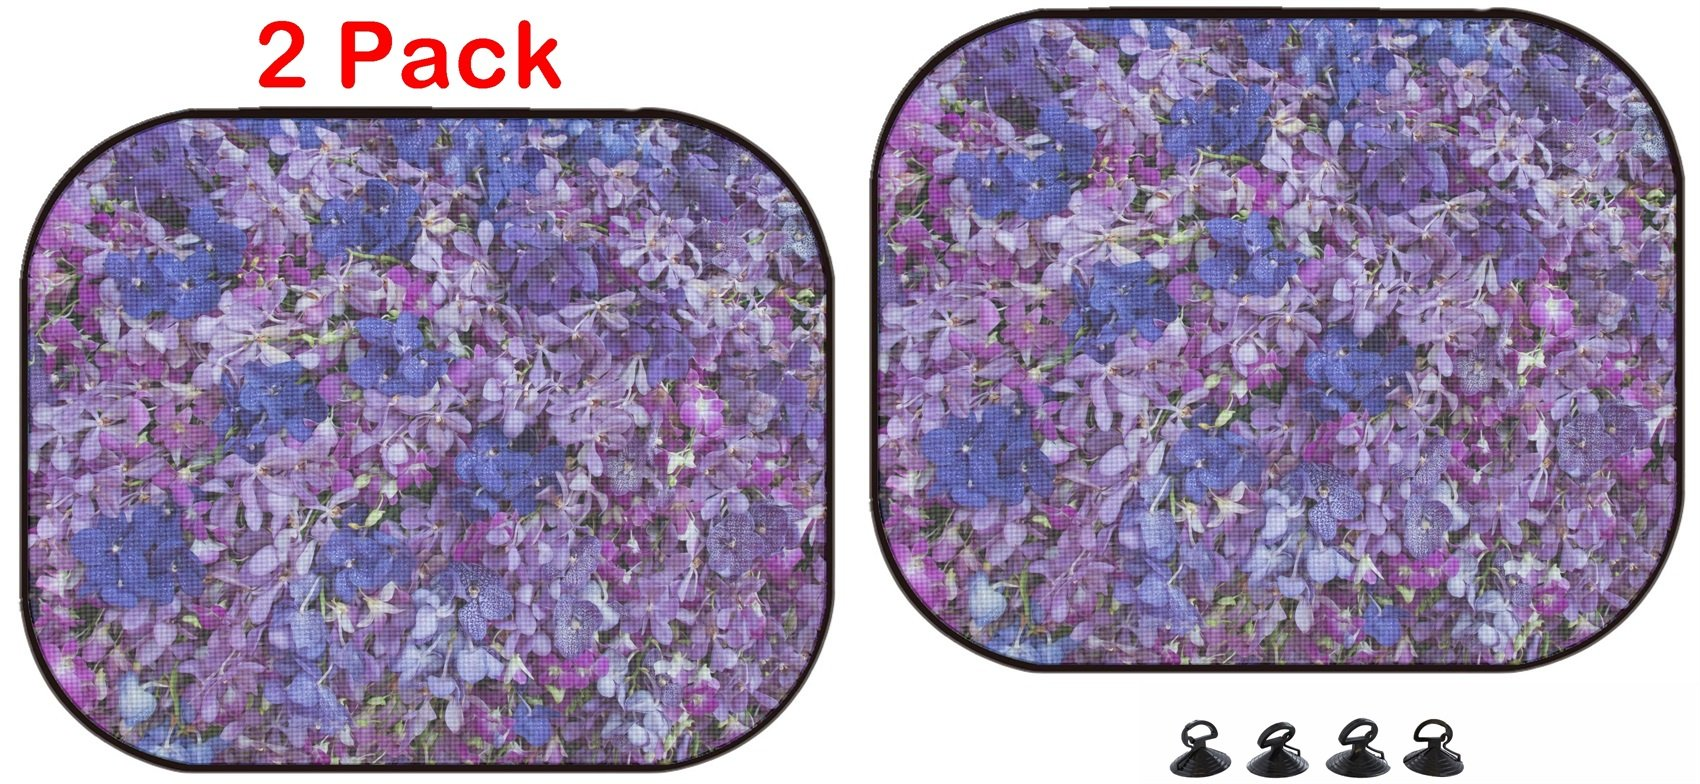 Luxlady Car Sun Shade Protector Block Damaging UV Rays Sunlight Heat for All Vehicles, 2 Pack Image ID: 34364004 Blue Purple Orchid Flower Background